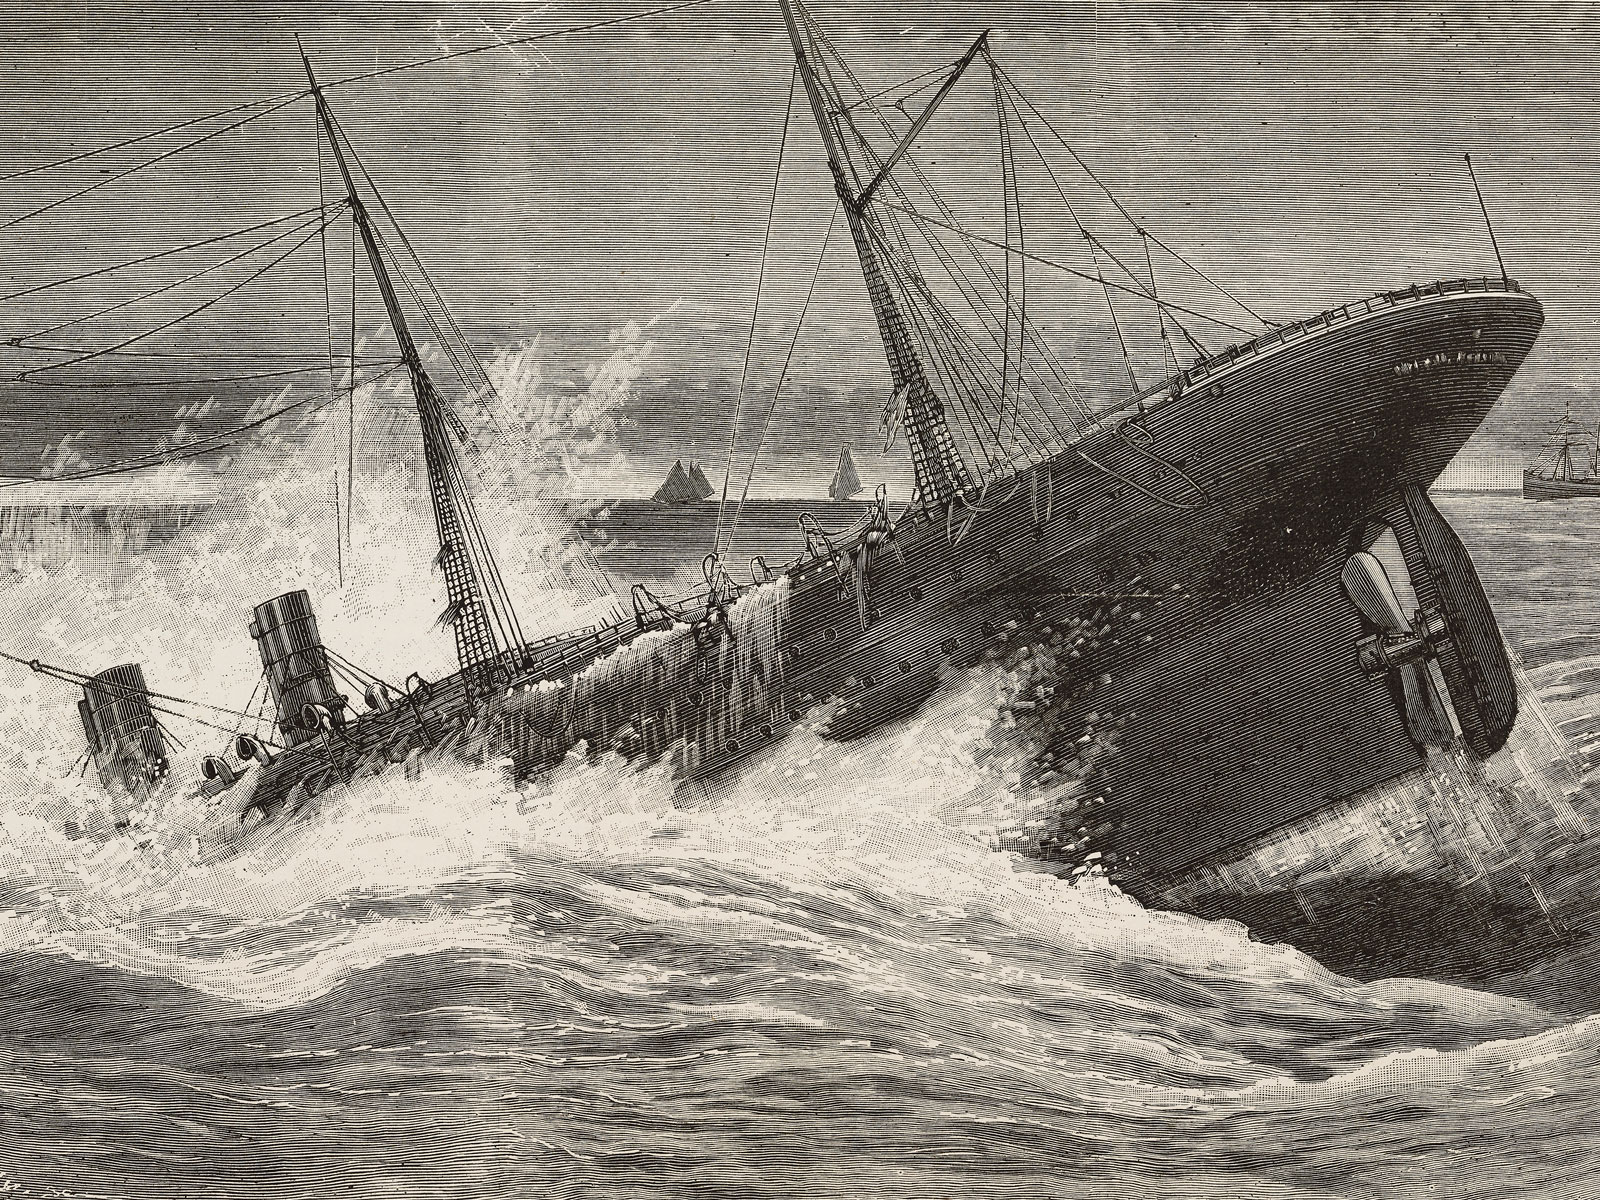 Sinking of the Oregon steamer, March 14, 1886, Long Island, United States of America, illustration by Tilly from L'Illustration, Journal Universel, No 2250, Volume LXXXVII, April 10, 1886.